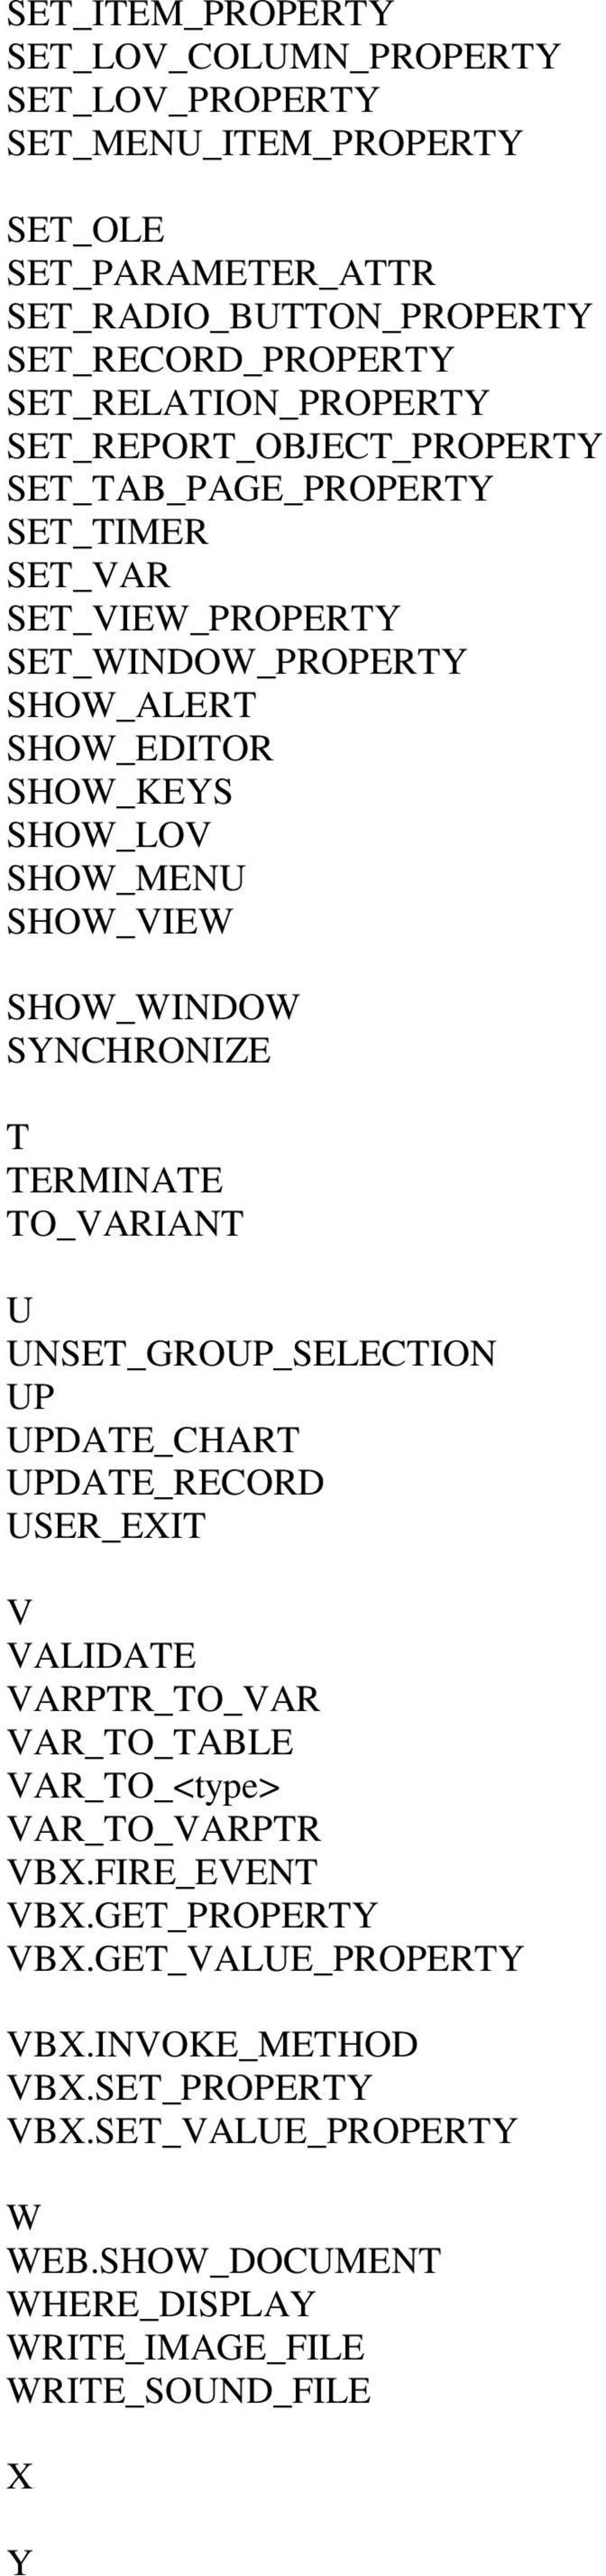 SHOW_WINDOW SYNCHRONIZE T TERMINATE TO_VARIANT U UNSET_GROUP_SELECTION UP UPDATE_CHART UPDATE_RECORD USER_EXIT V VALIDATE VARPTR_TO_VAR VAR_TO_TABLE VAR_TO_<type> VAR_TO_VARPTR